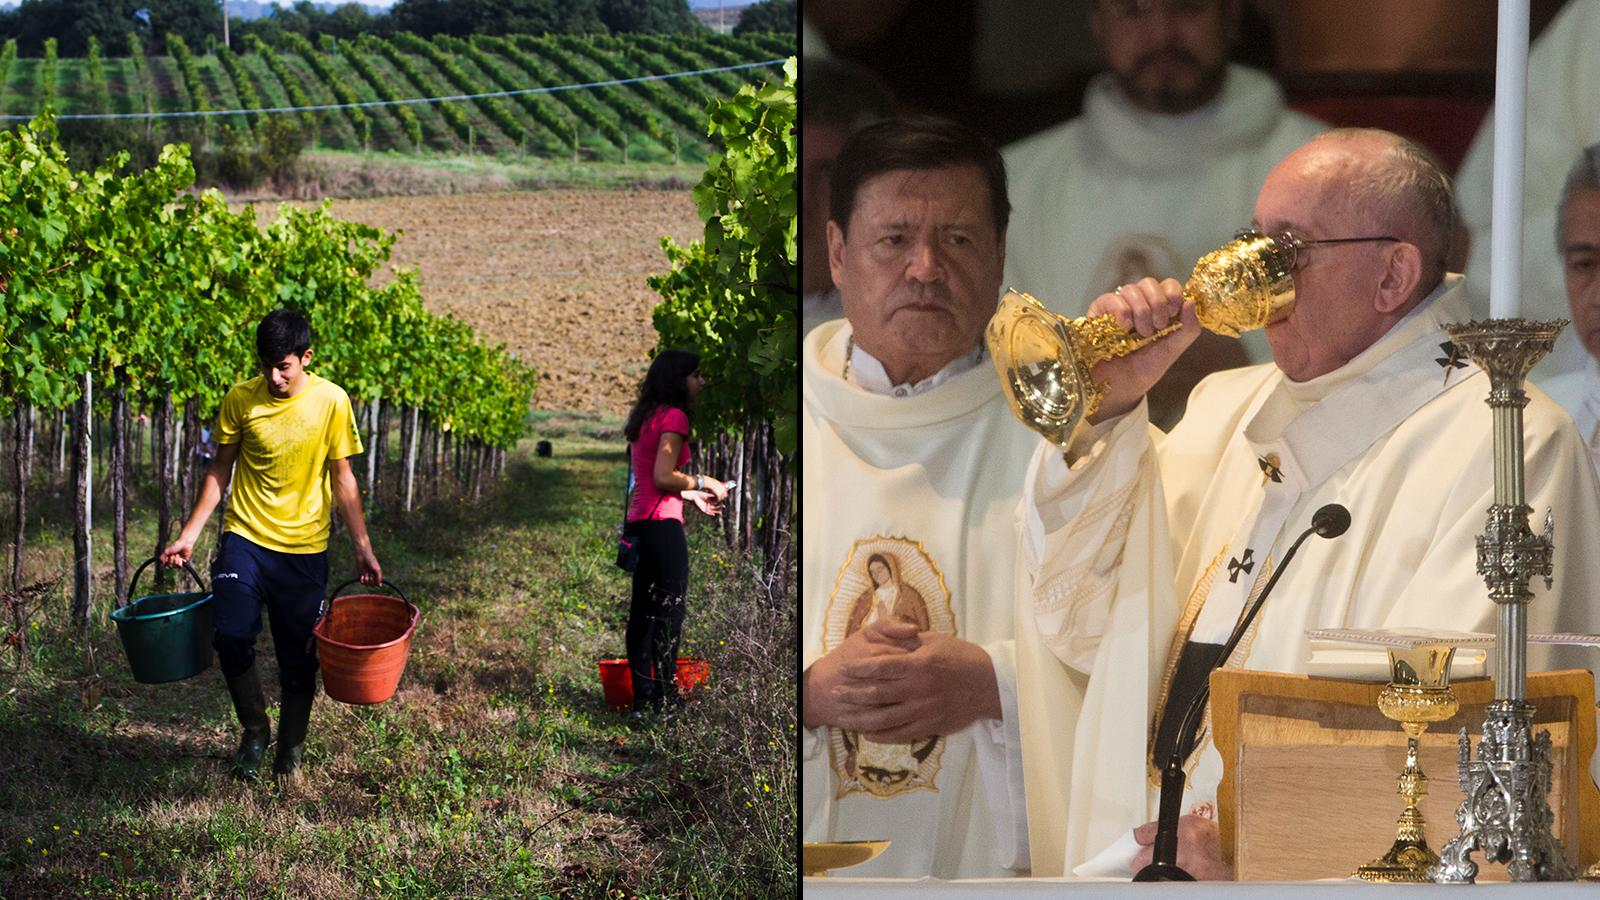 Pope Francis' Wine Prayers Answered